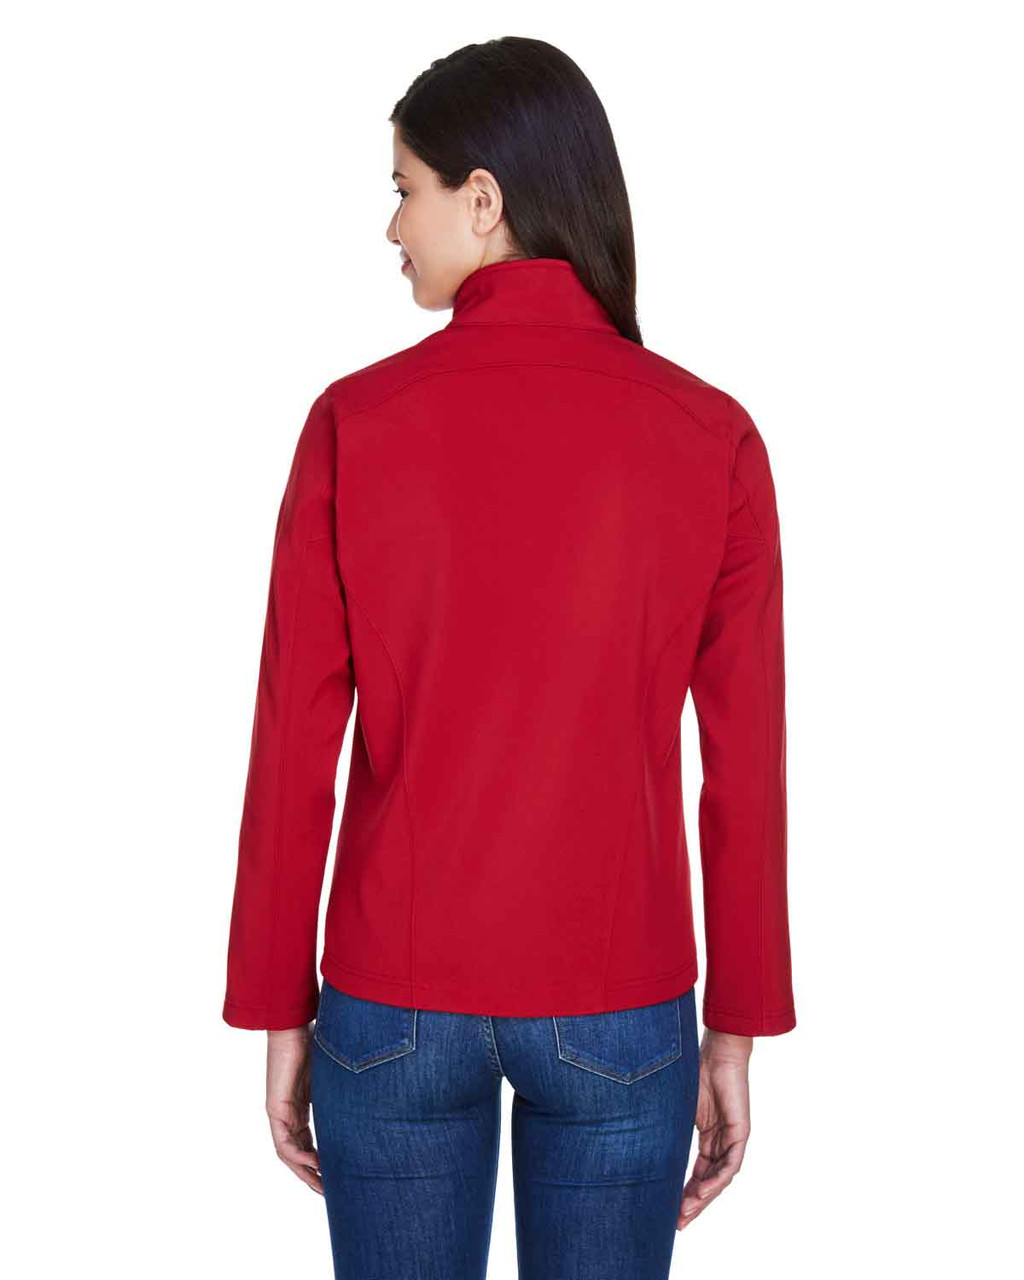 Classic Red - Back, 78184 Core 365 Ladies' Fleece Soft Shell Jacket | Blankclothing.ca